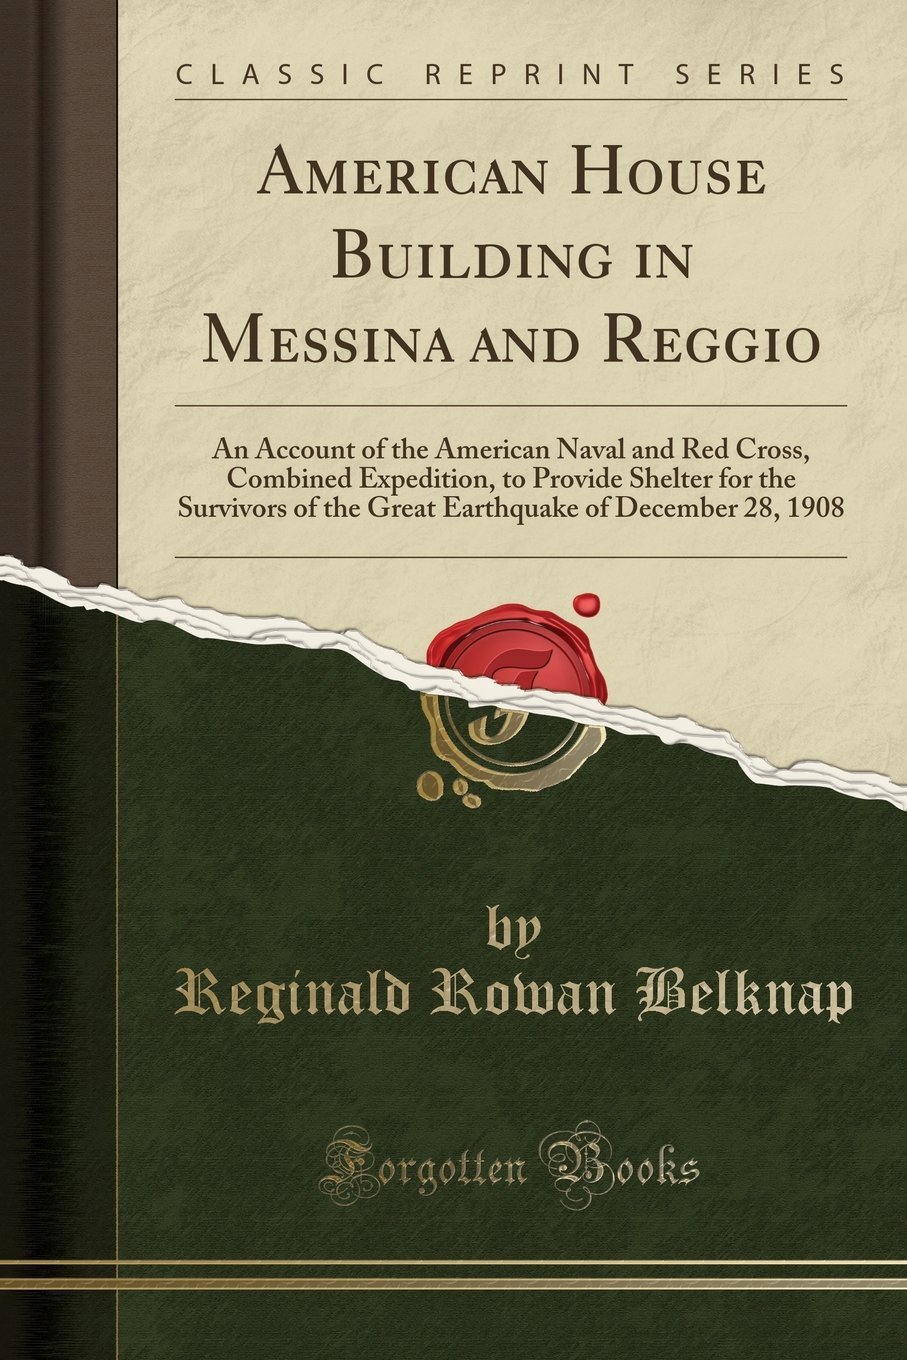 Download American House Building in Messina and Reggio: An Account of the American Naval and Red Cross, Combined Expedition, to Provide Shelter for the ... of December 28, 1908 (Classic Reprint) pdf epub